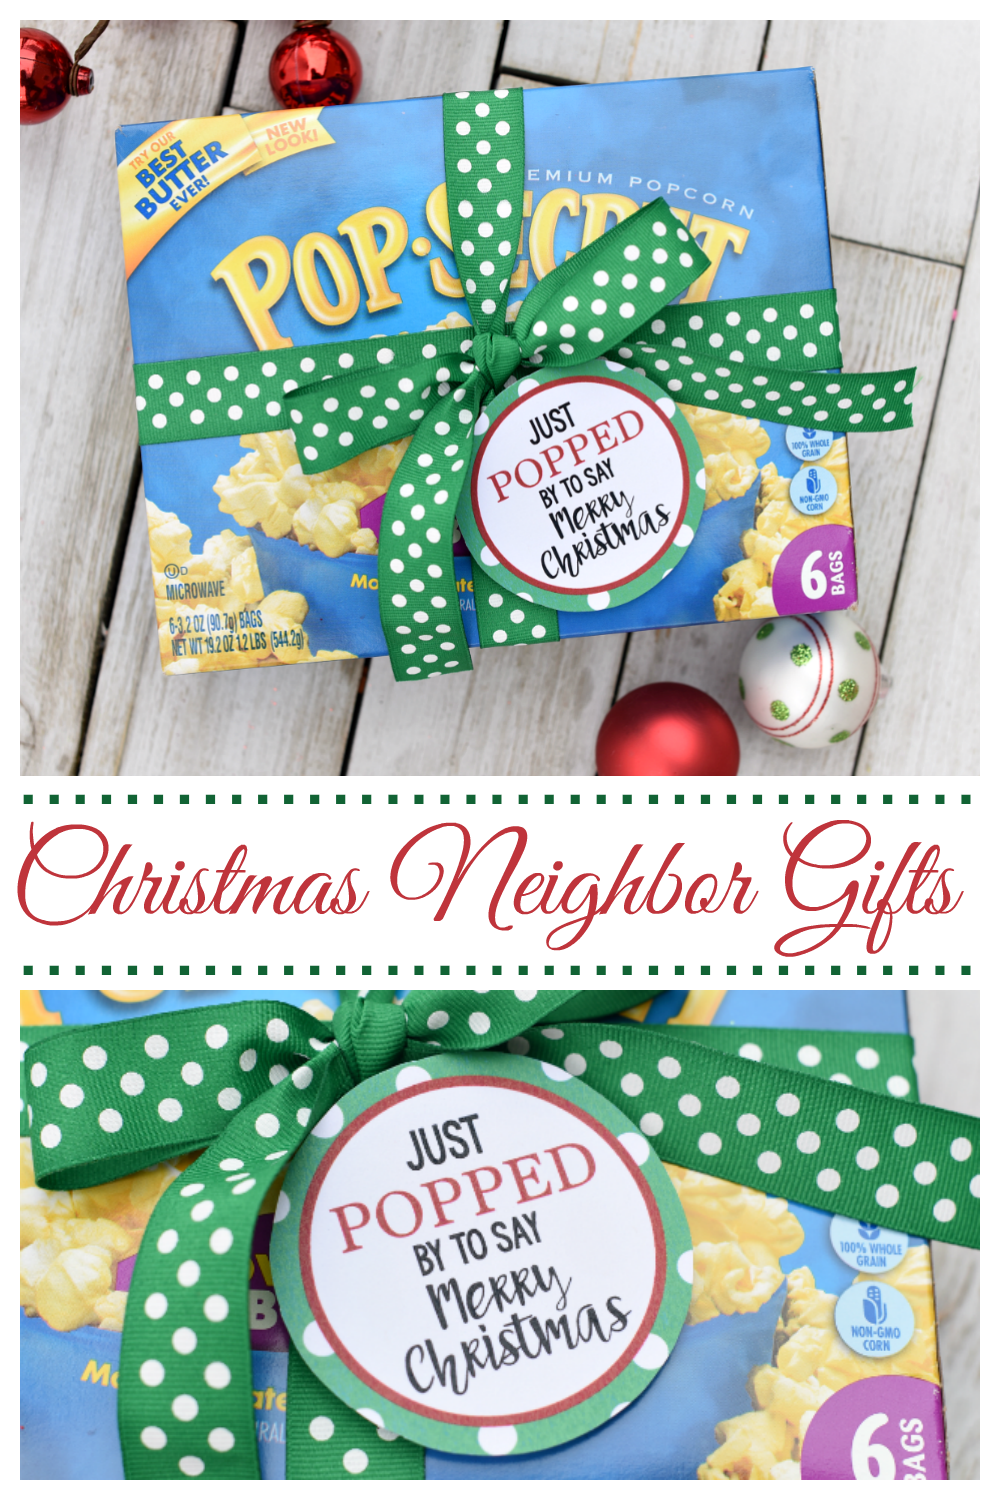 Just POPPED by to say Merry Christmas! This cute neighbor gift is fun to give and something they will love to receive as well. #neighborgifts #christmas